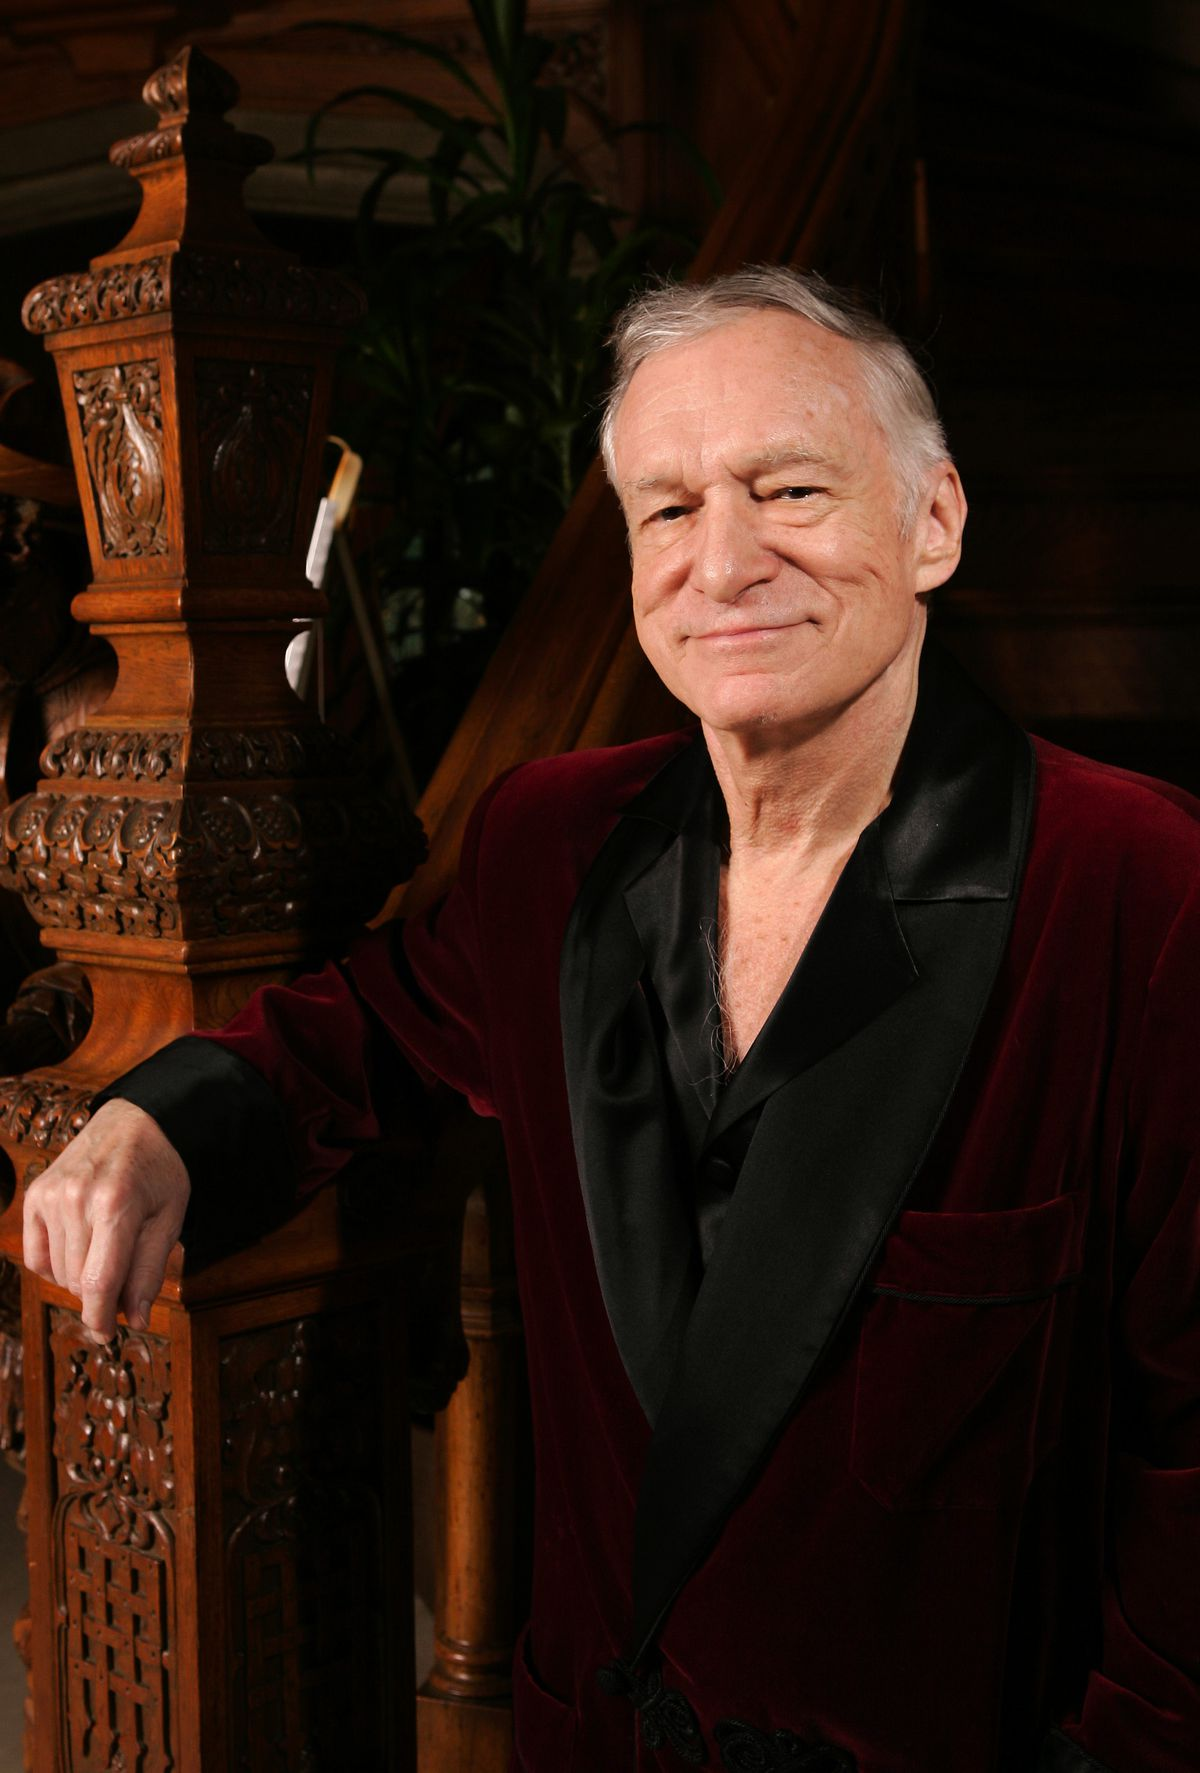 """Playboy magazine publisher Hugh Hefner said he wasn't involved with """"obscene matters,"""" though obscenity charges brought against him in the 1960s."""